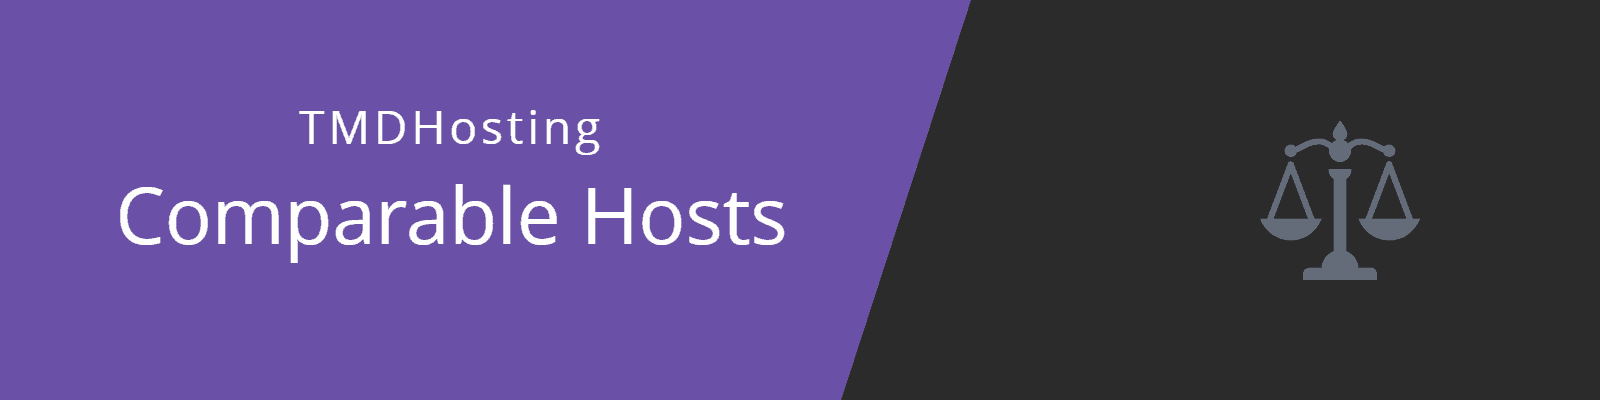 TMDHosting Comparable Hosts